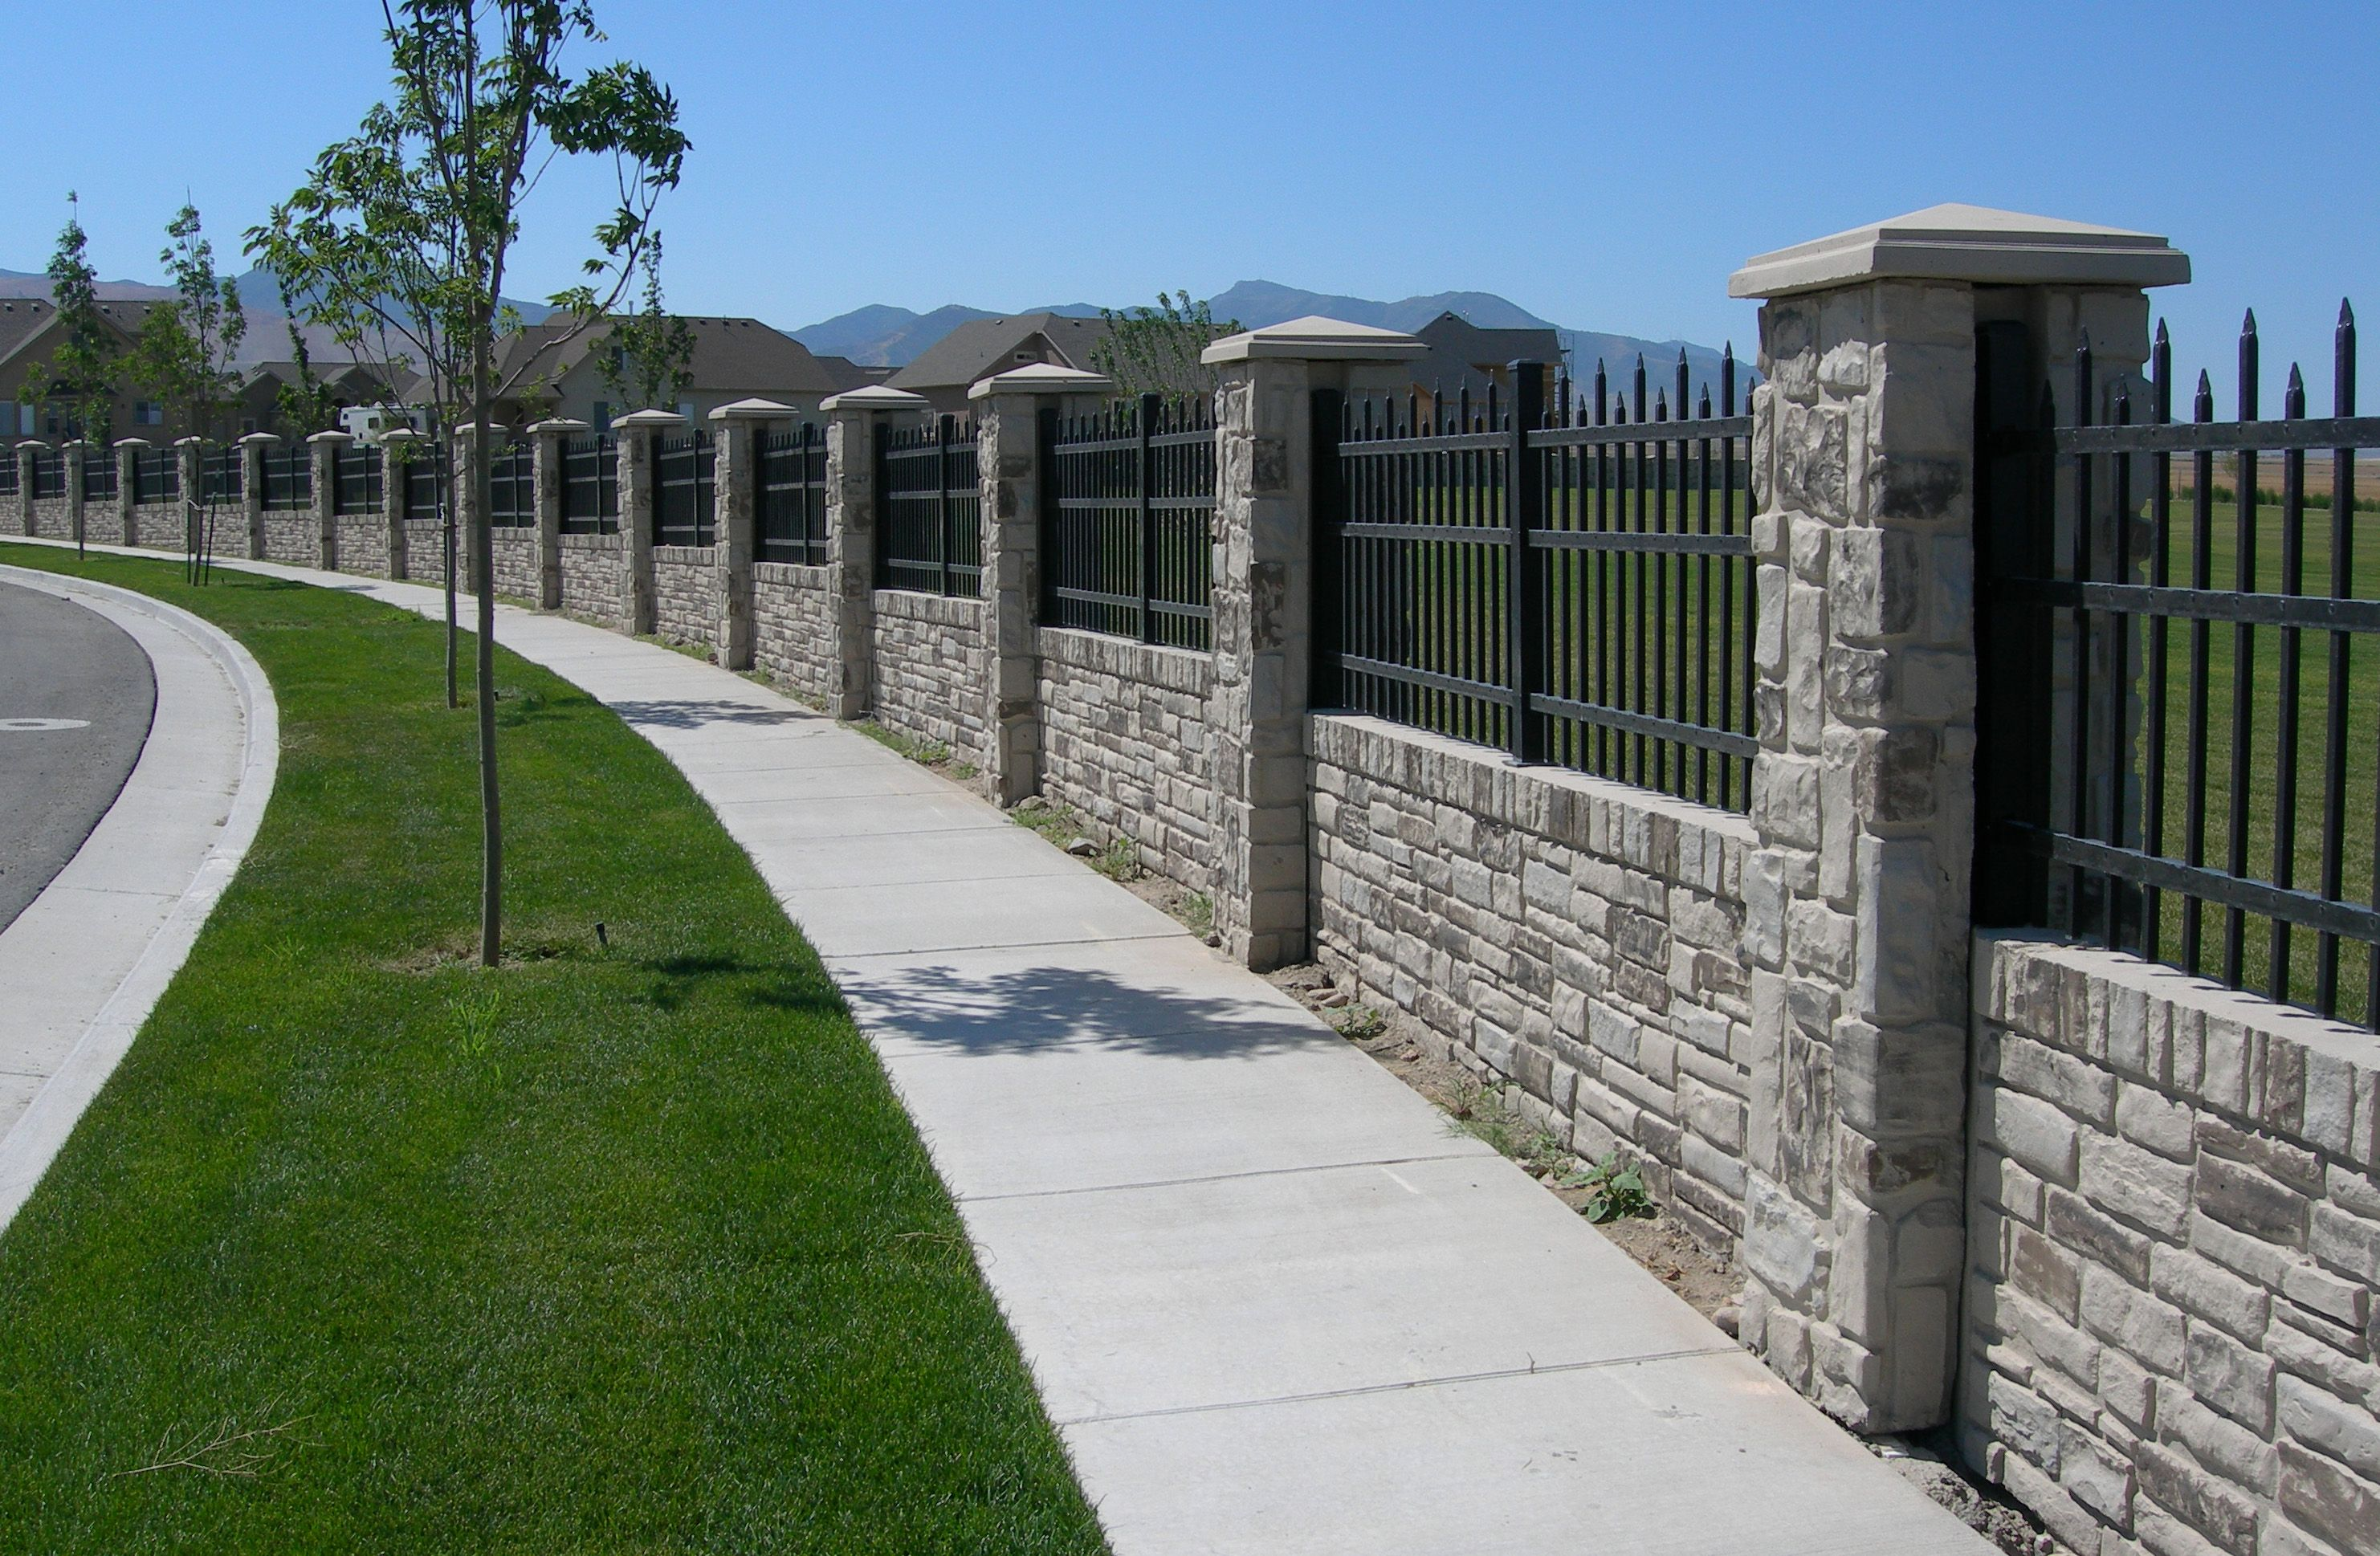 privacy fencing concrete walls with realistic stone texture and